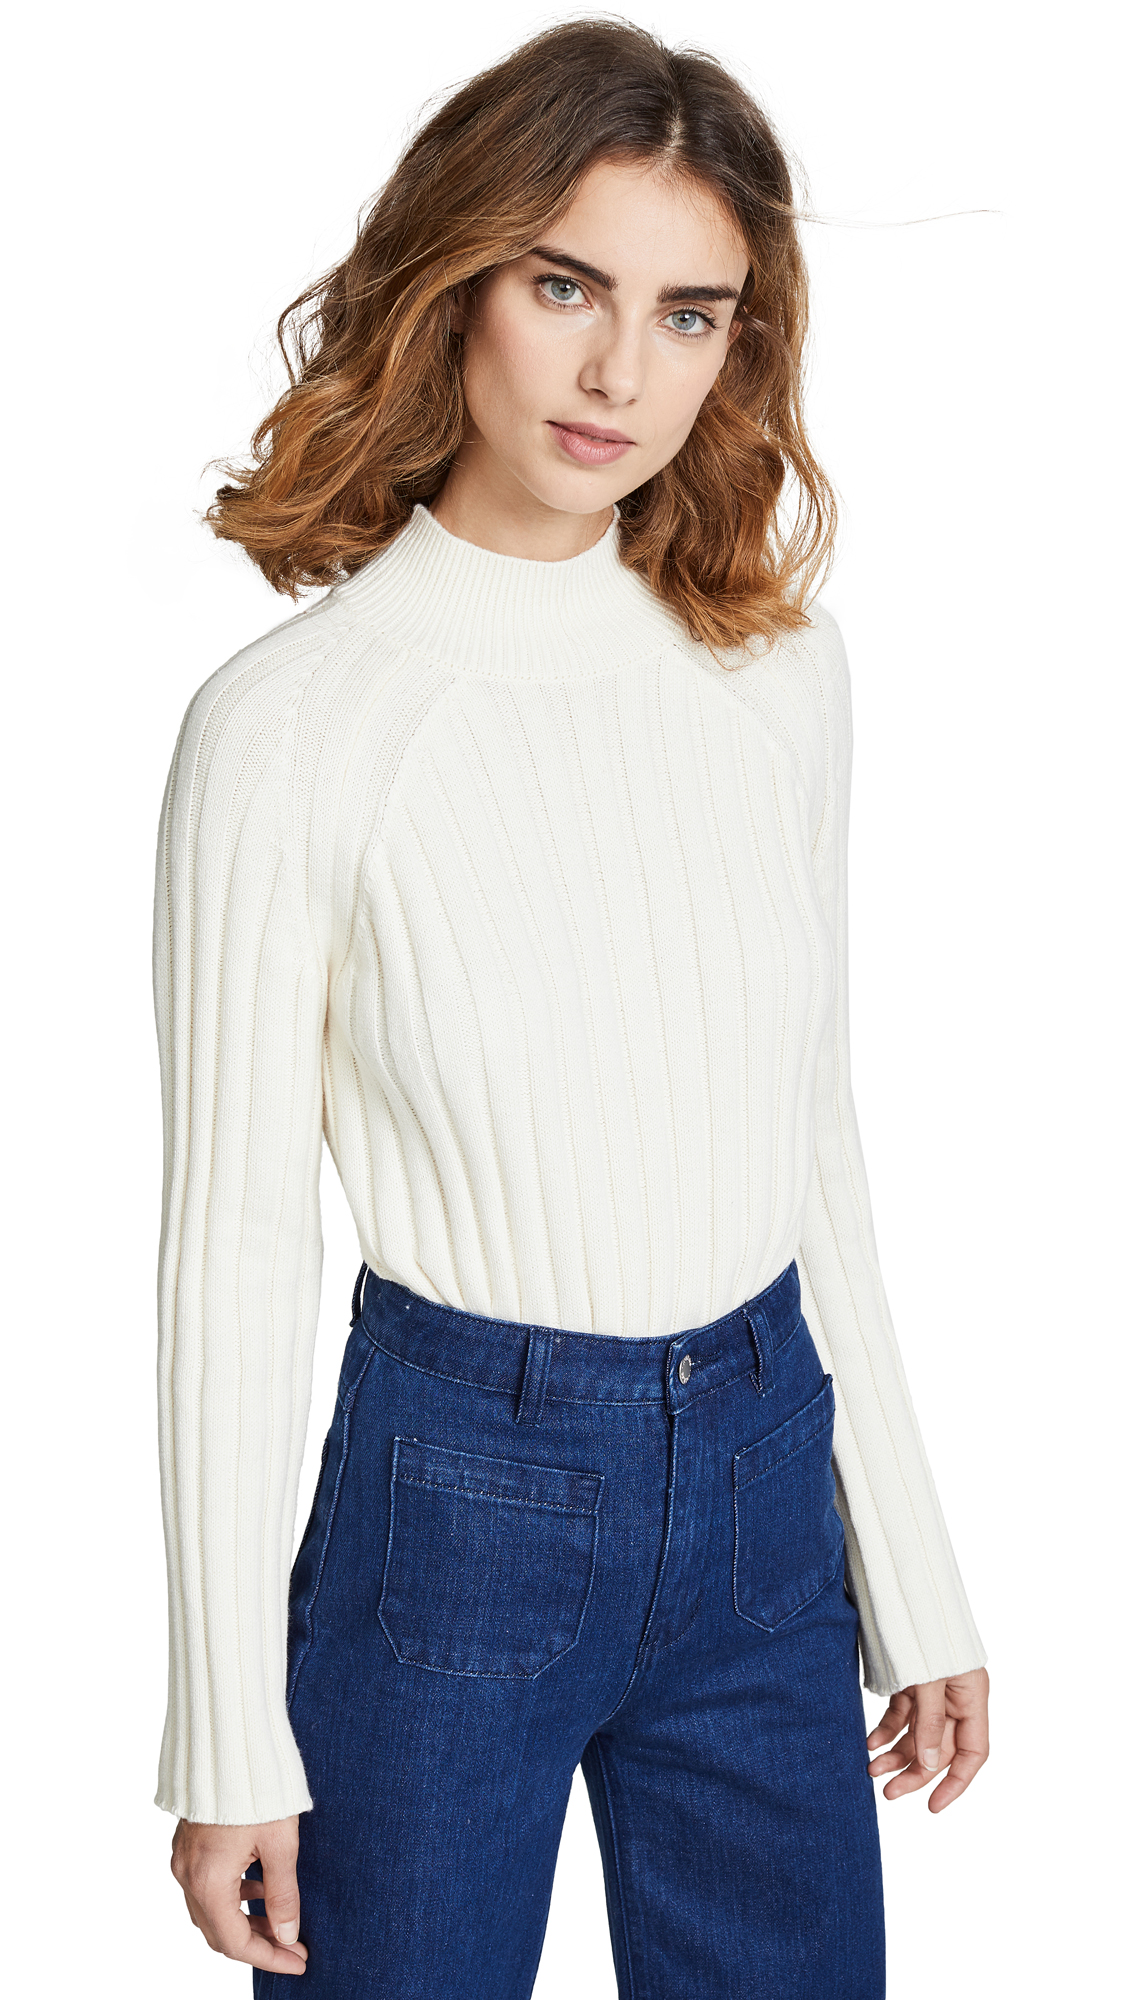 BOP BASICS Wide Rib Turtleneck Sweater in Winter White